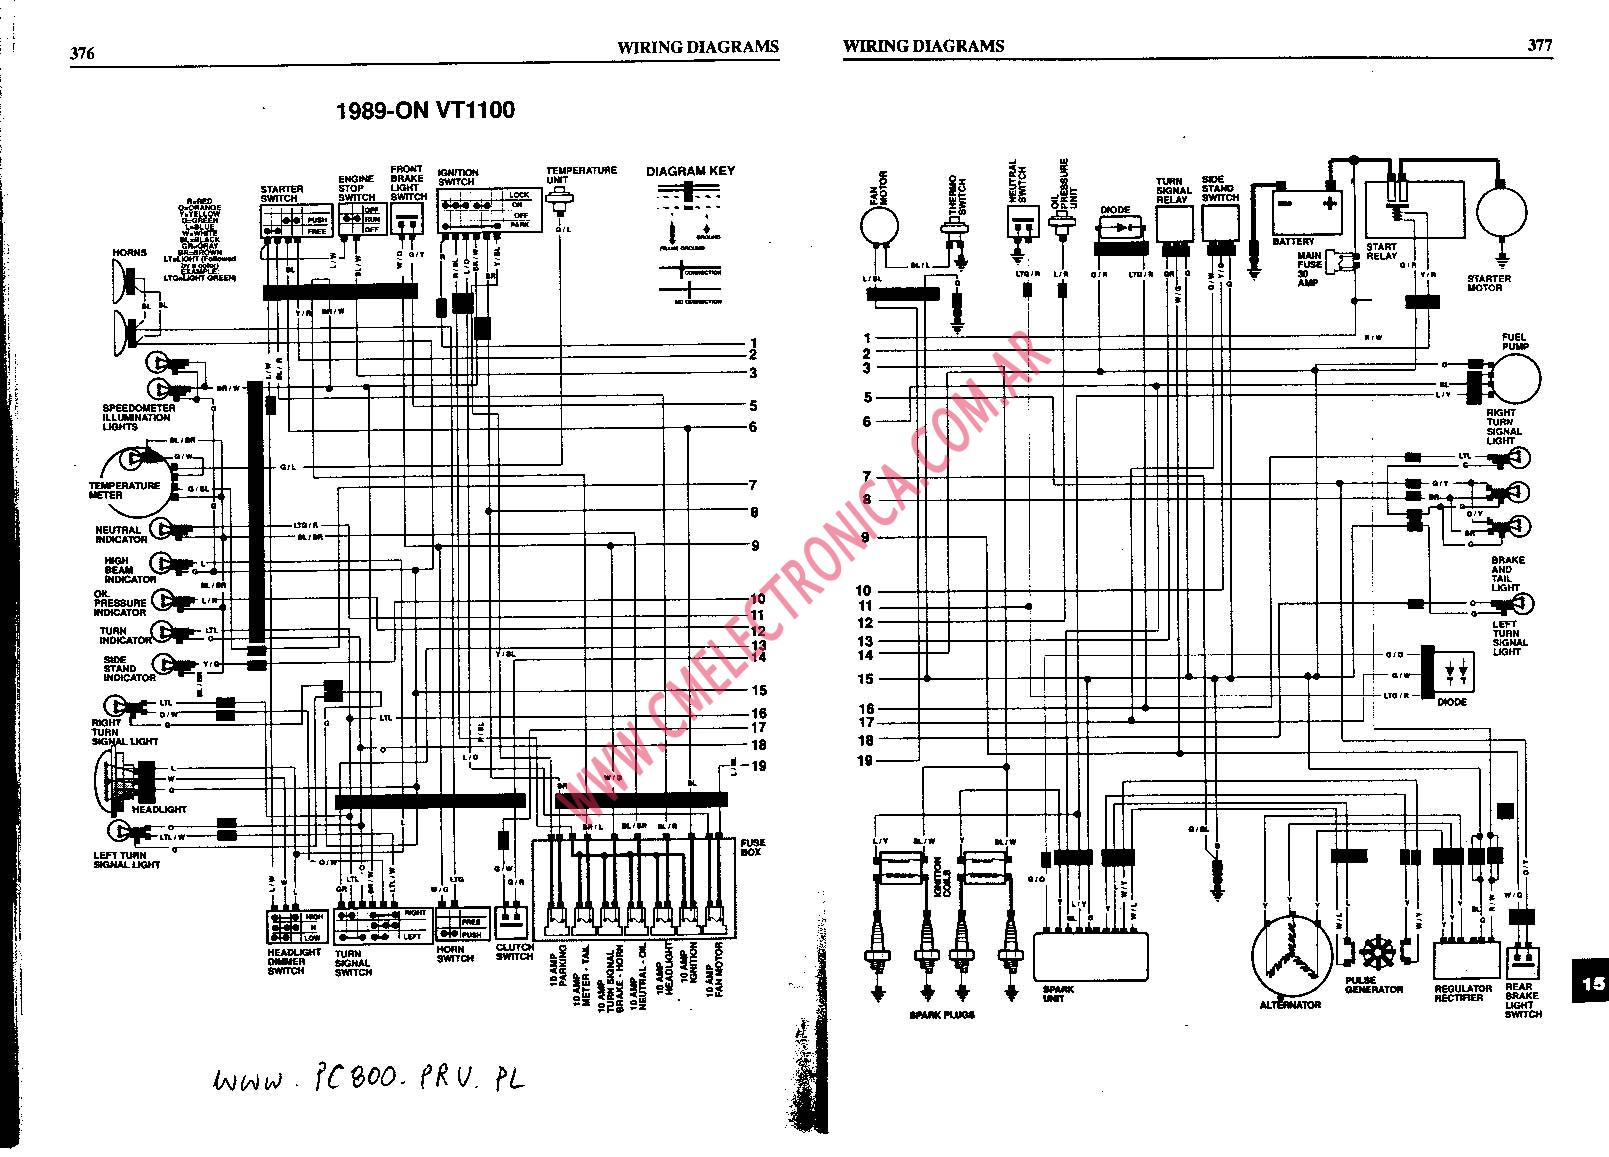 1993 Integra Fuse Box Manual Of Wiring Diagram 1988 Honda Accord 2004 Ke Light Diagrams U2022